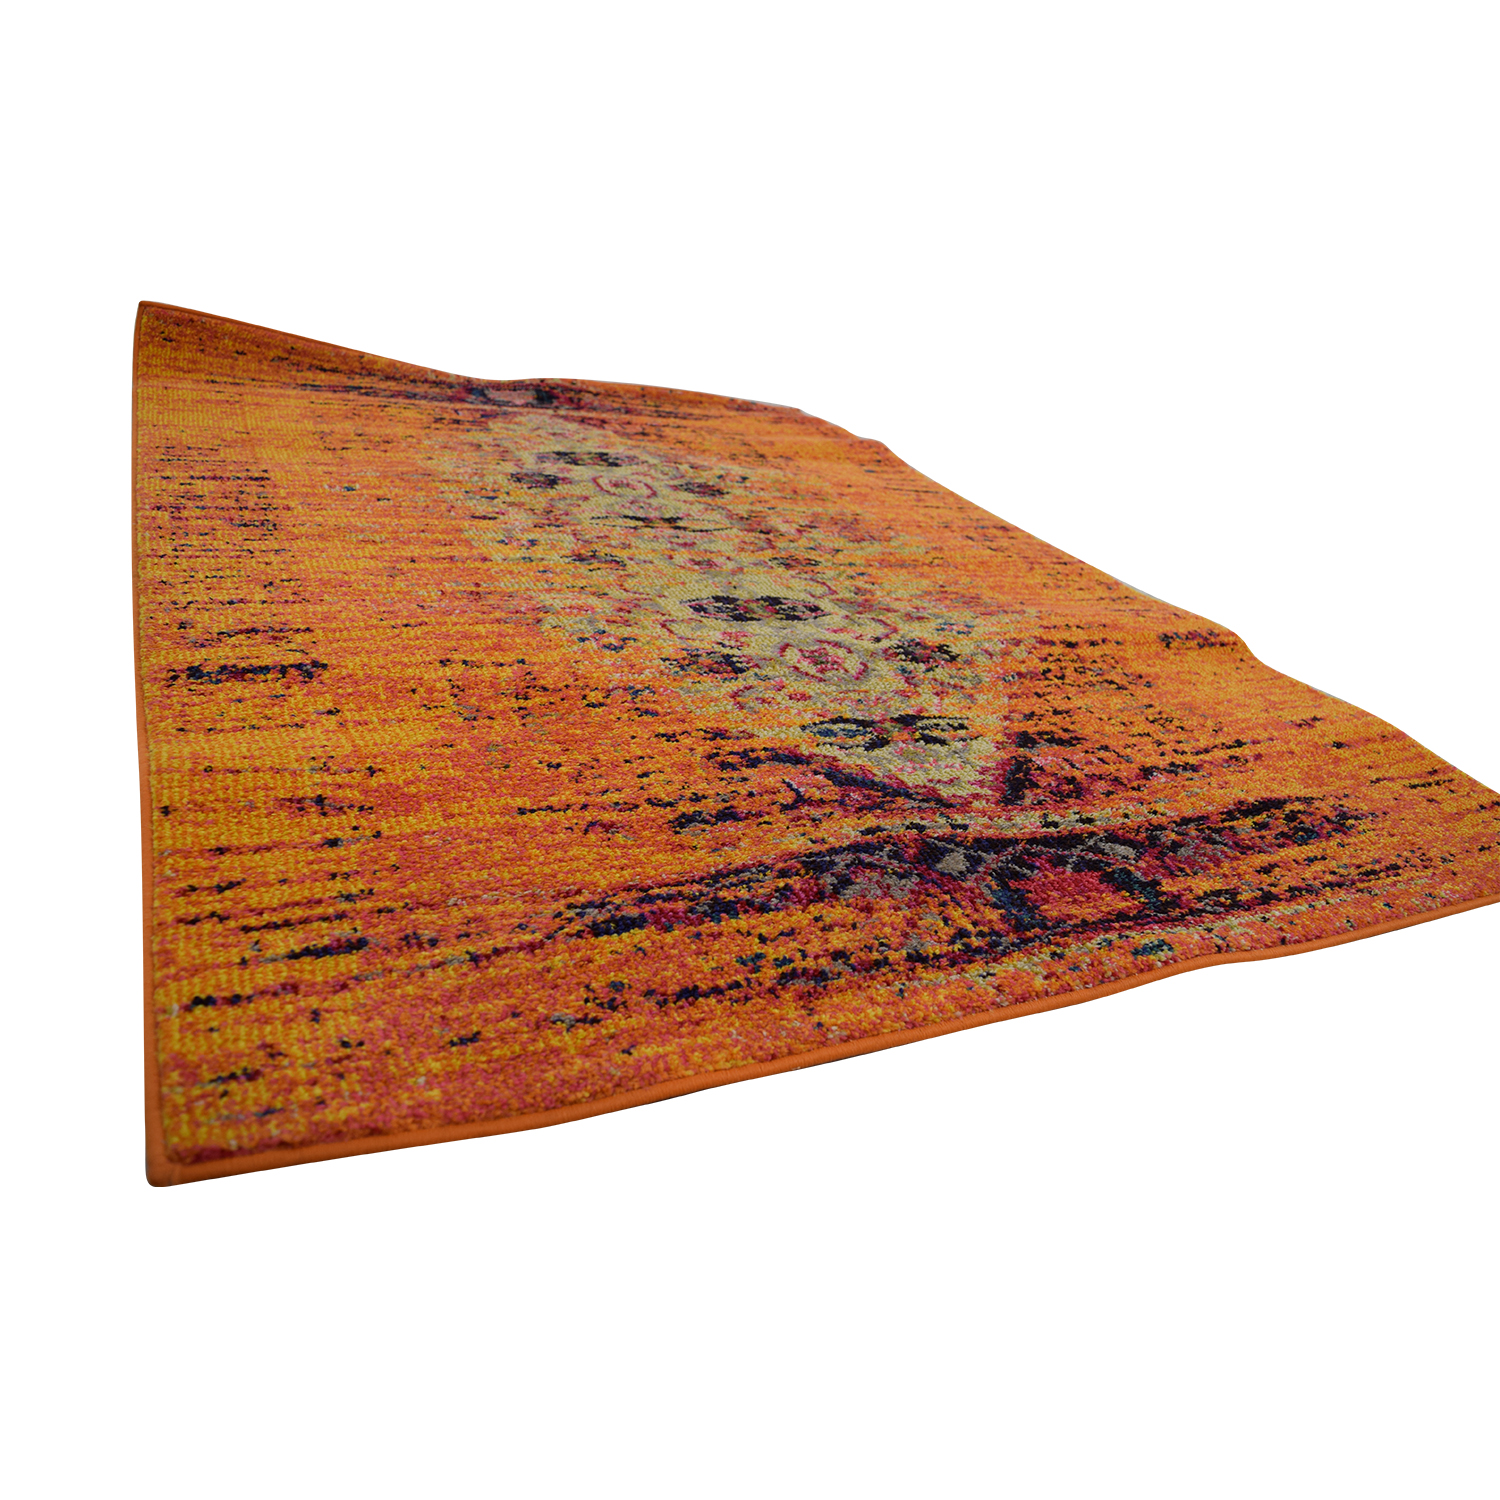 Safavieh Safavieh Vintage Distressed Orange Rug Rugs